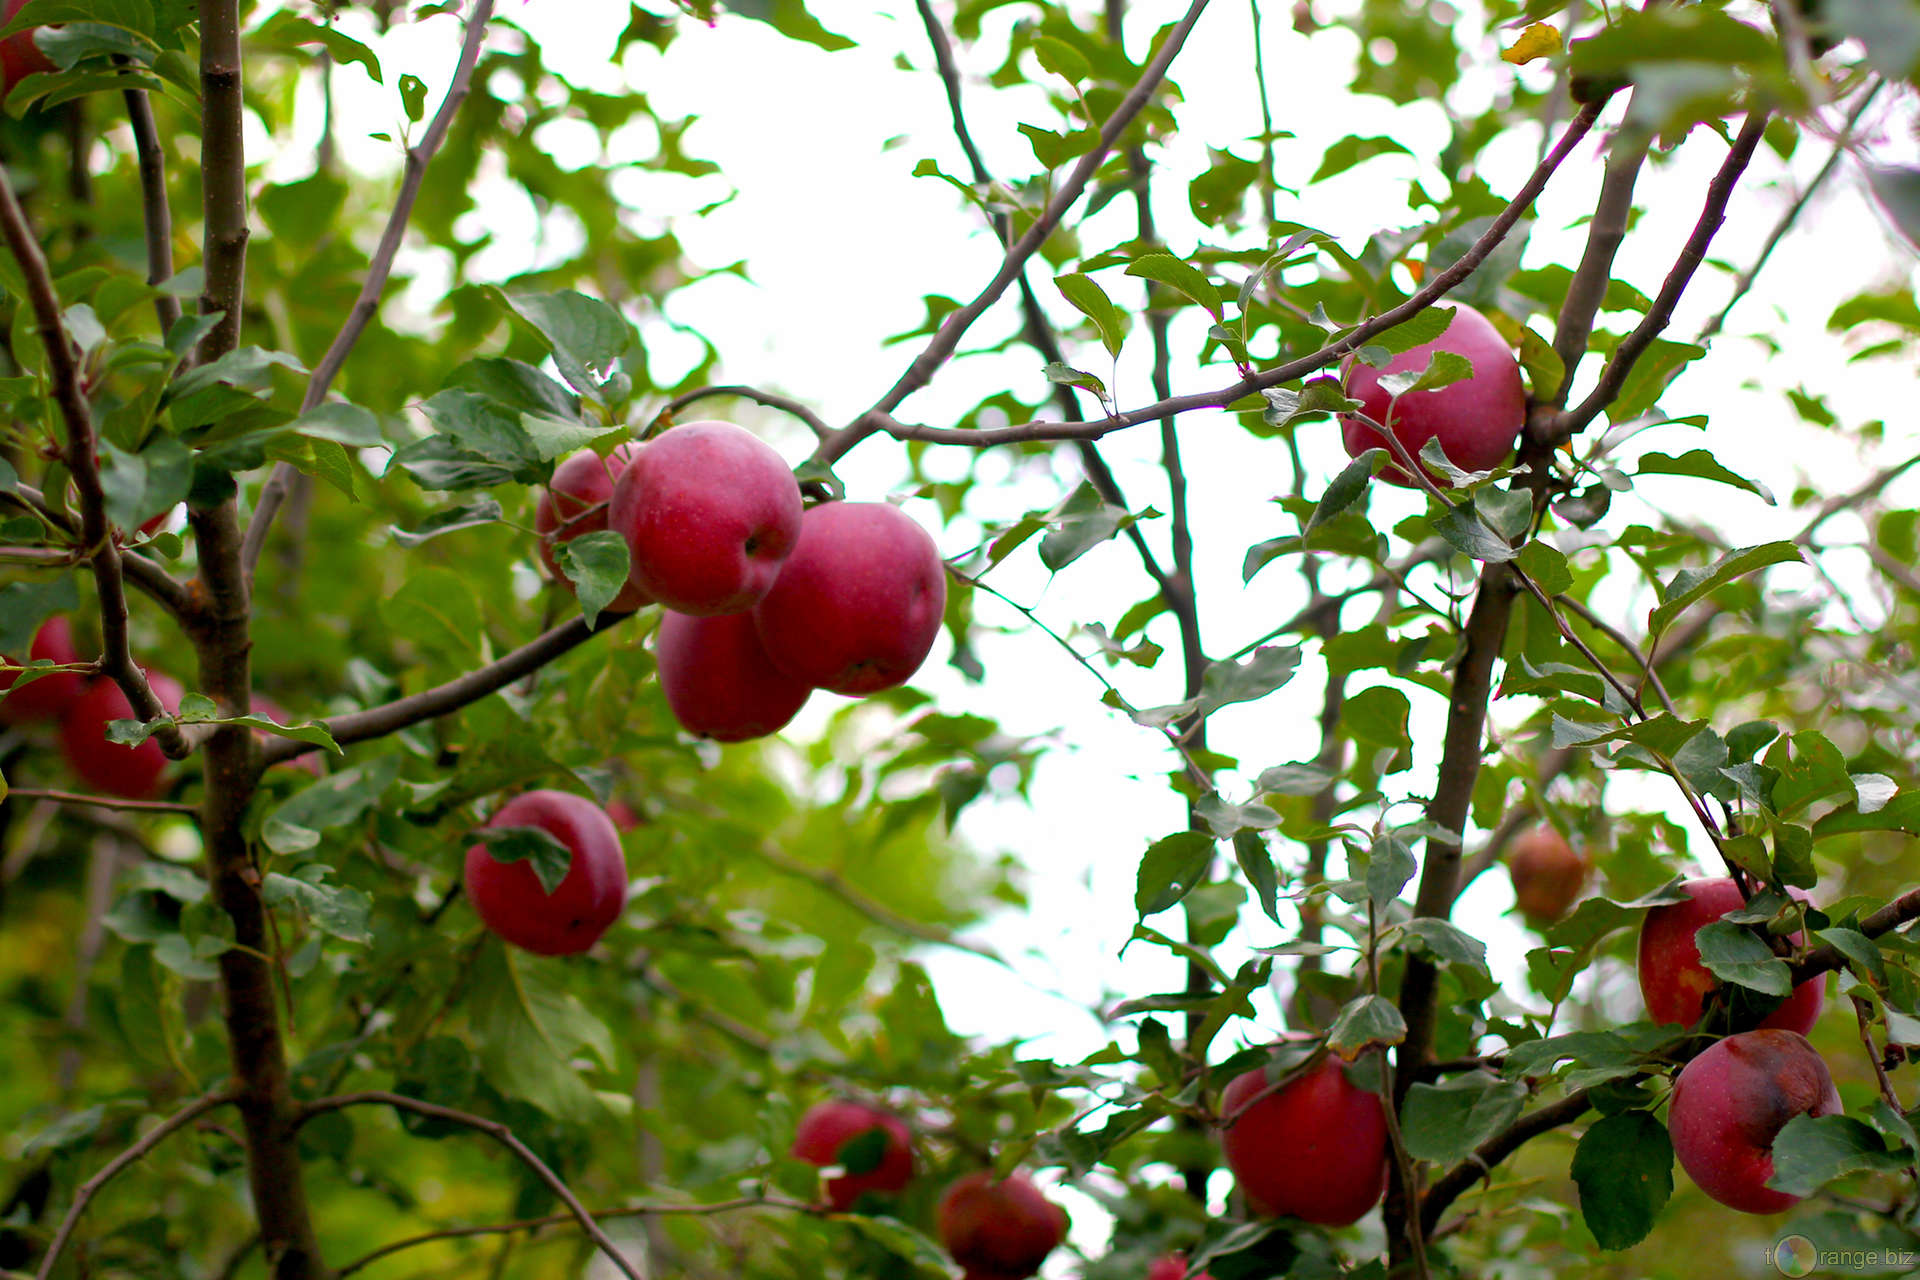 Red apples grow on Apple trees